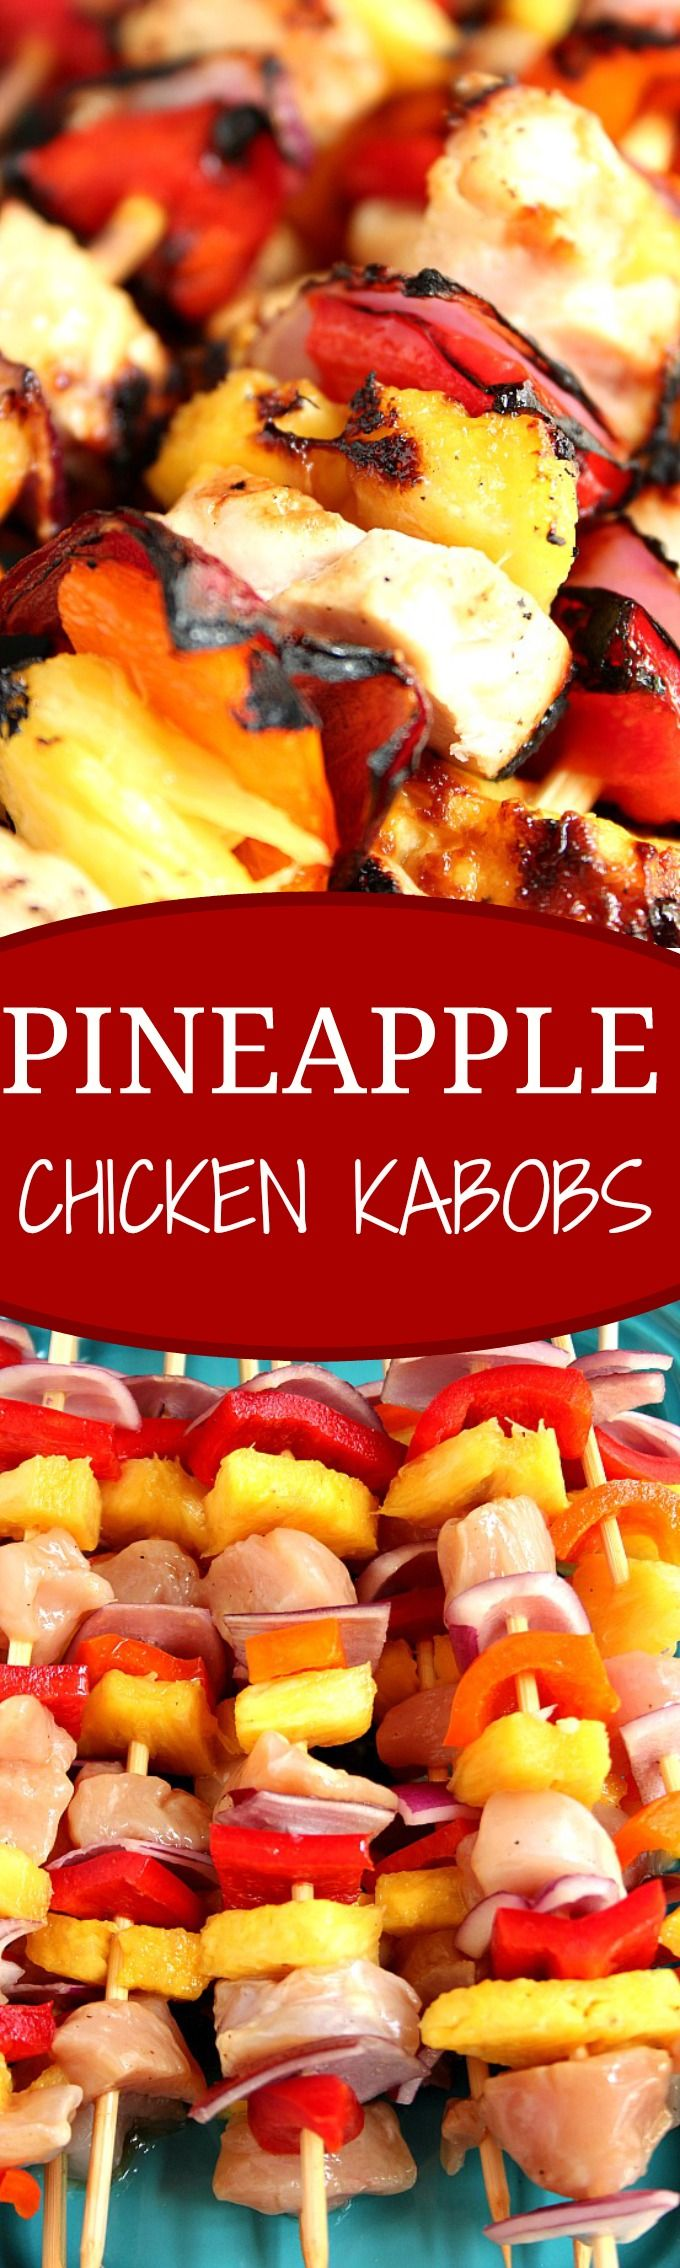 Pineapple Chicken Kabobs recipe - sweet and sour marinated chicken, colorful bell peppers, sweet red onion and juicy pineapple make these kabobs a great quick and easy summer dinner idea!